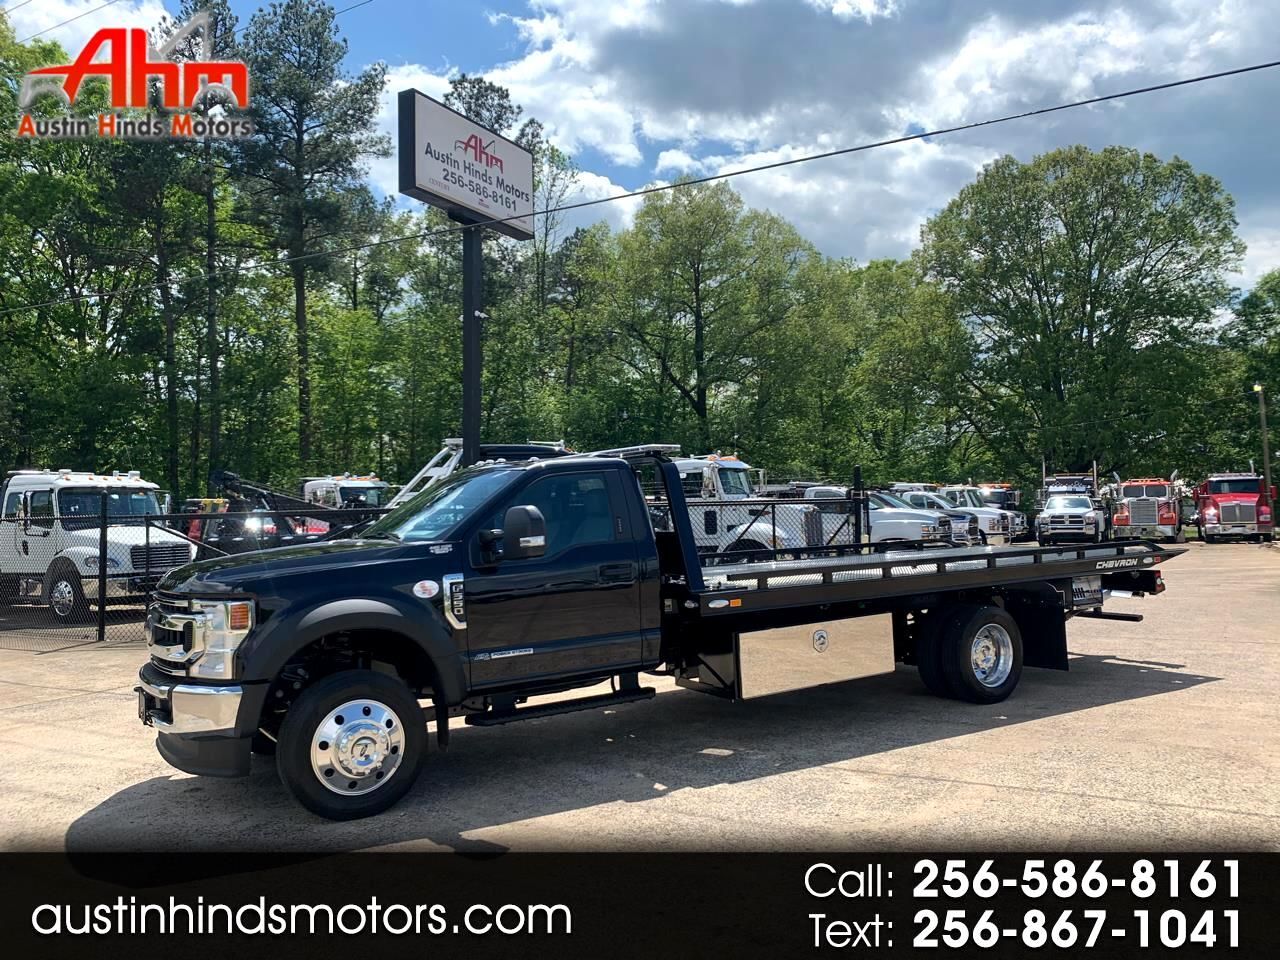 Ford F-550 Super Duty XLT 2020